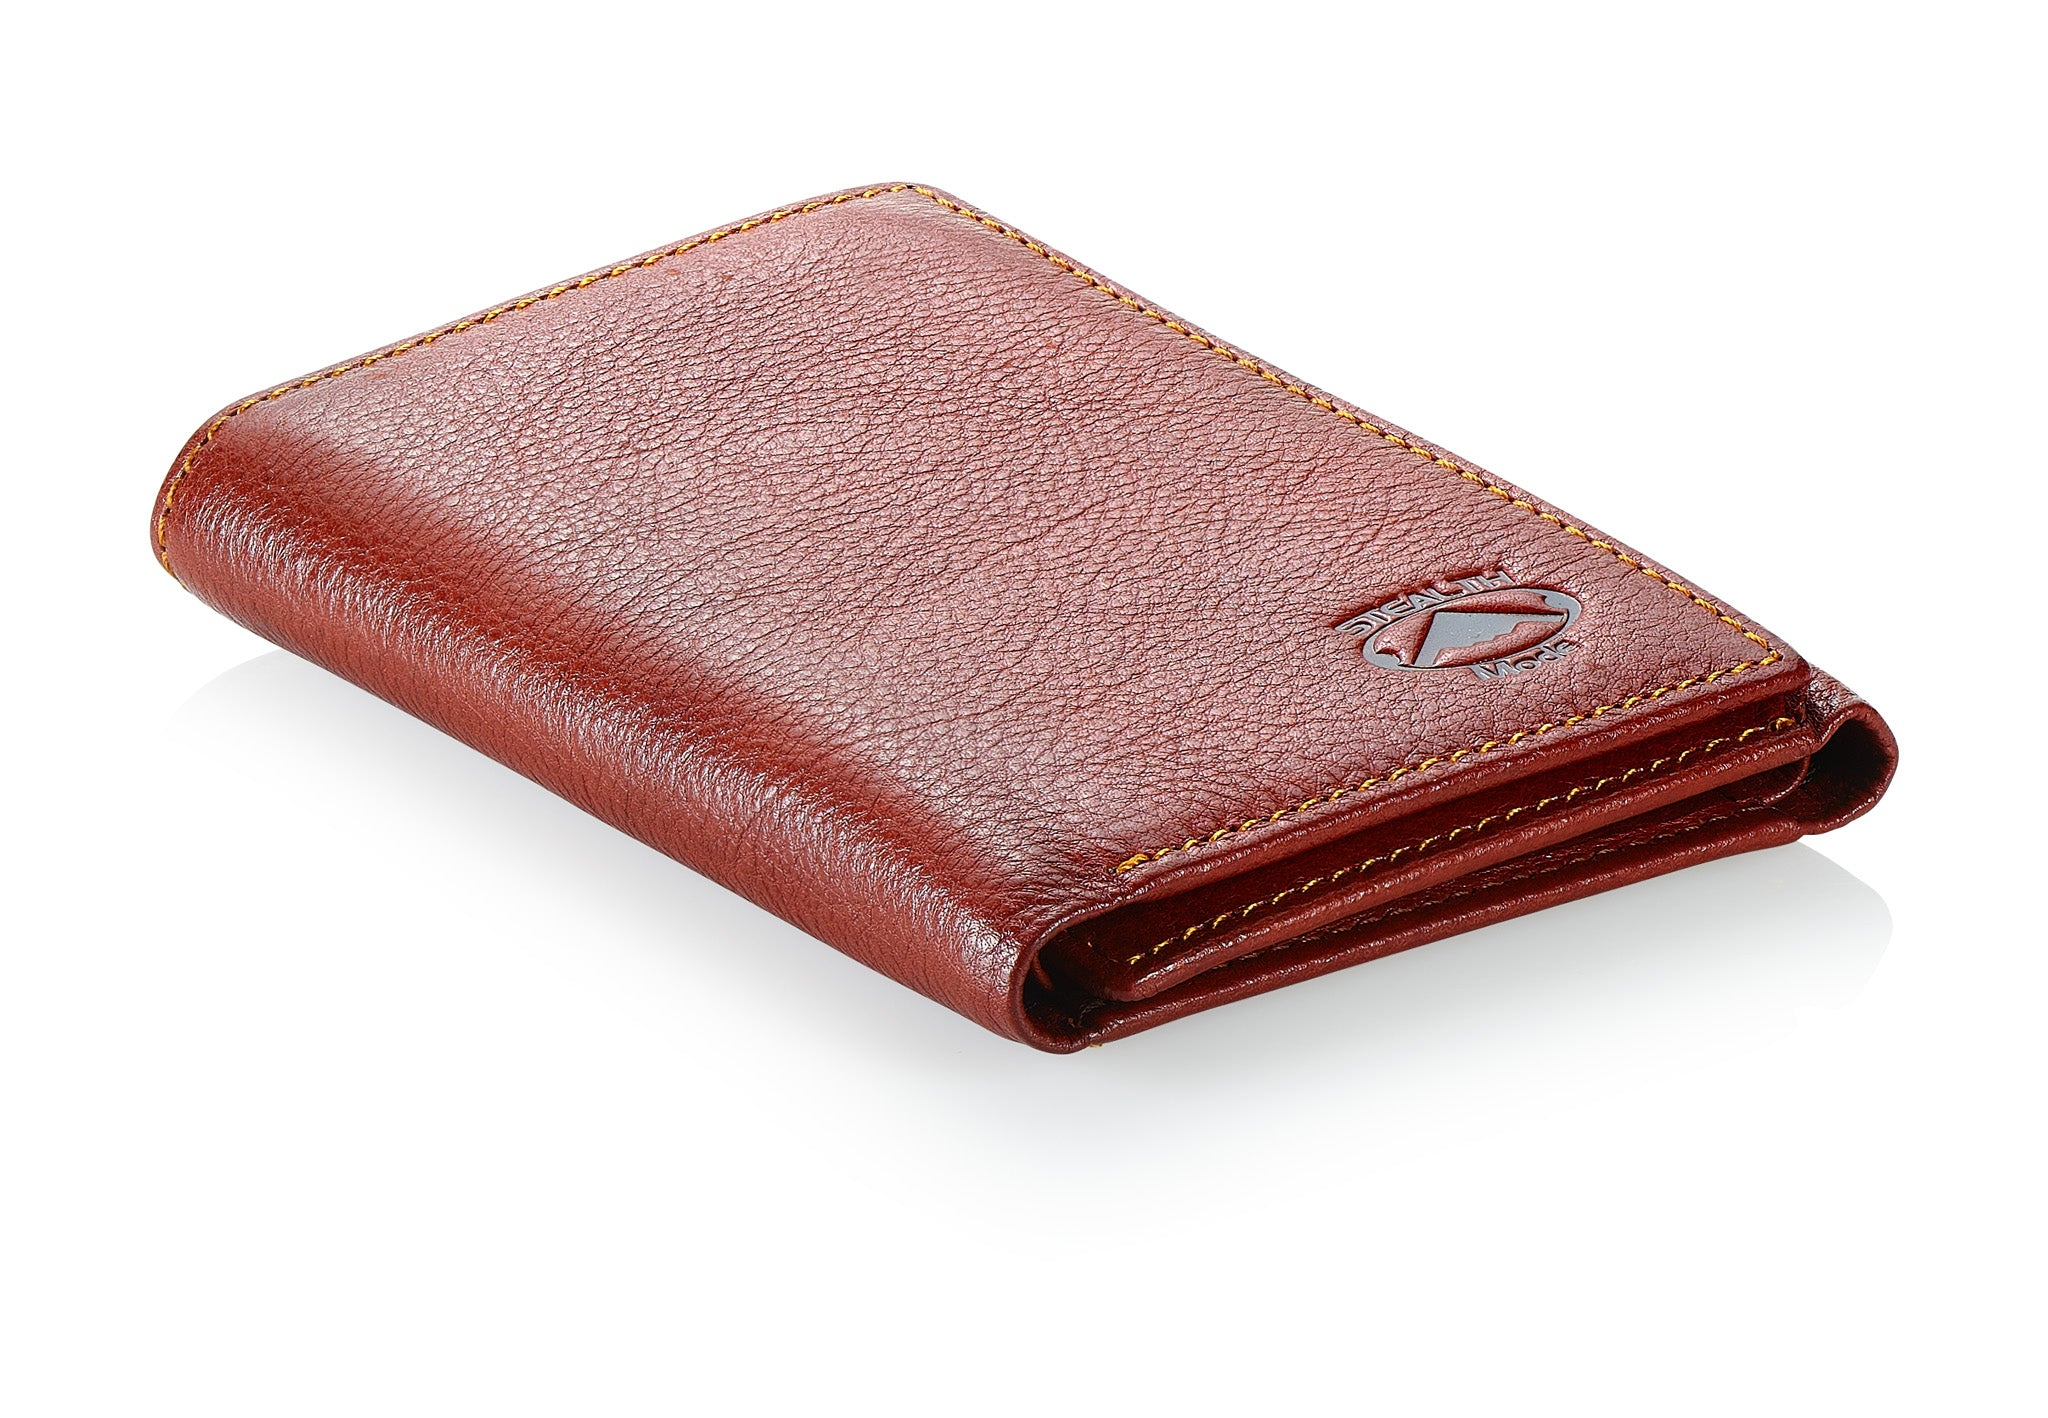 Burgundy Trifold Leather Wallet With RFID Blocking and ID Window